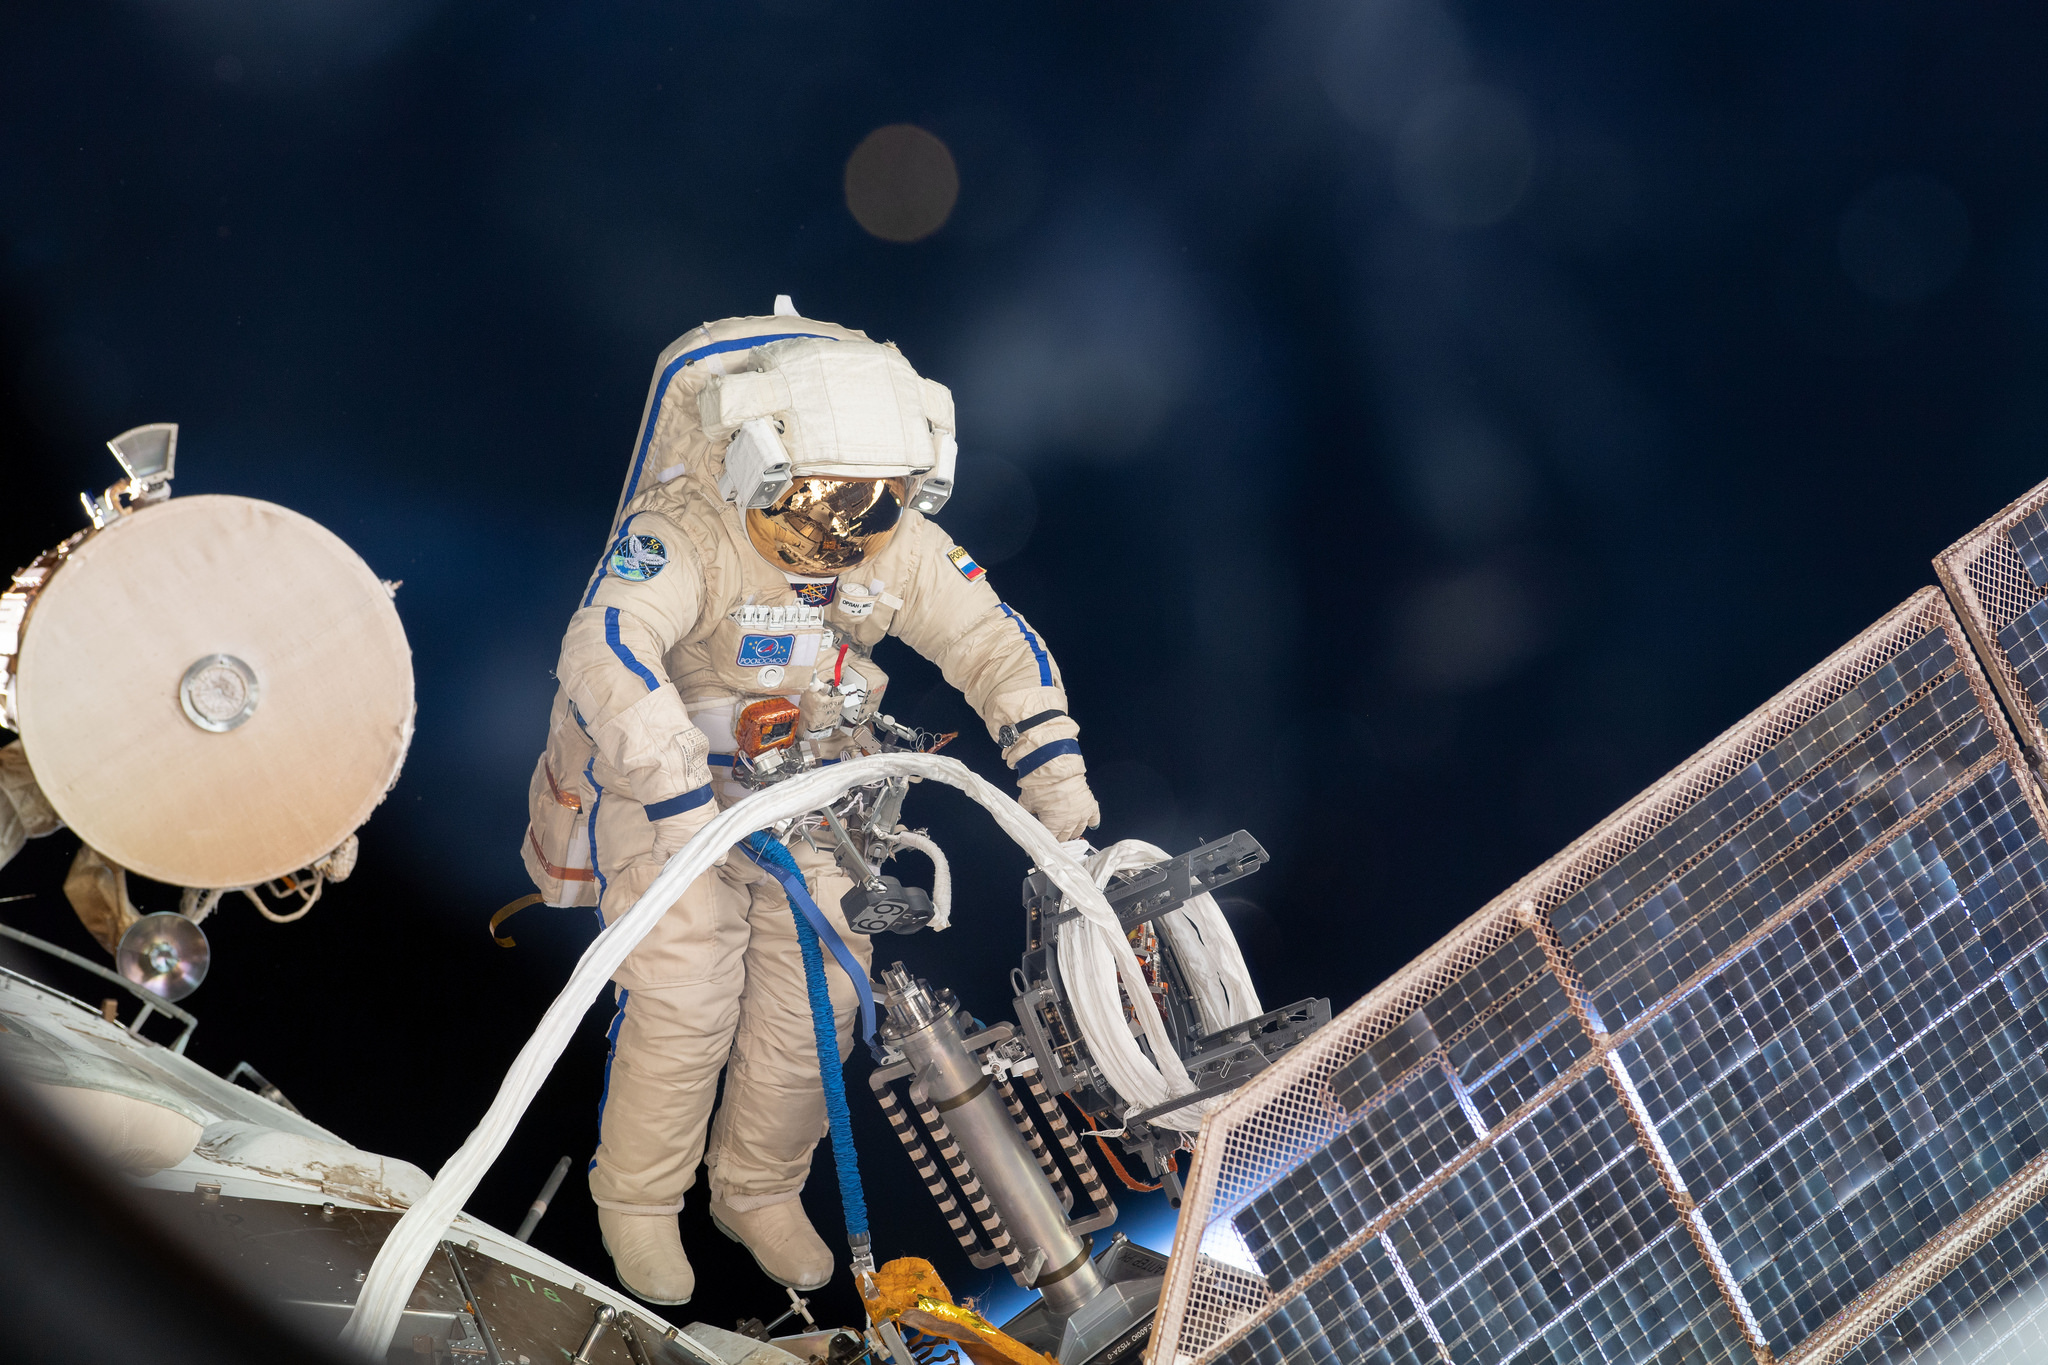 Russian cosmonaut Sergey Prokopyev lays cable for the installation of the Icarus experiment. Credit: NASA